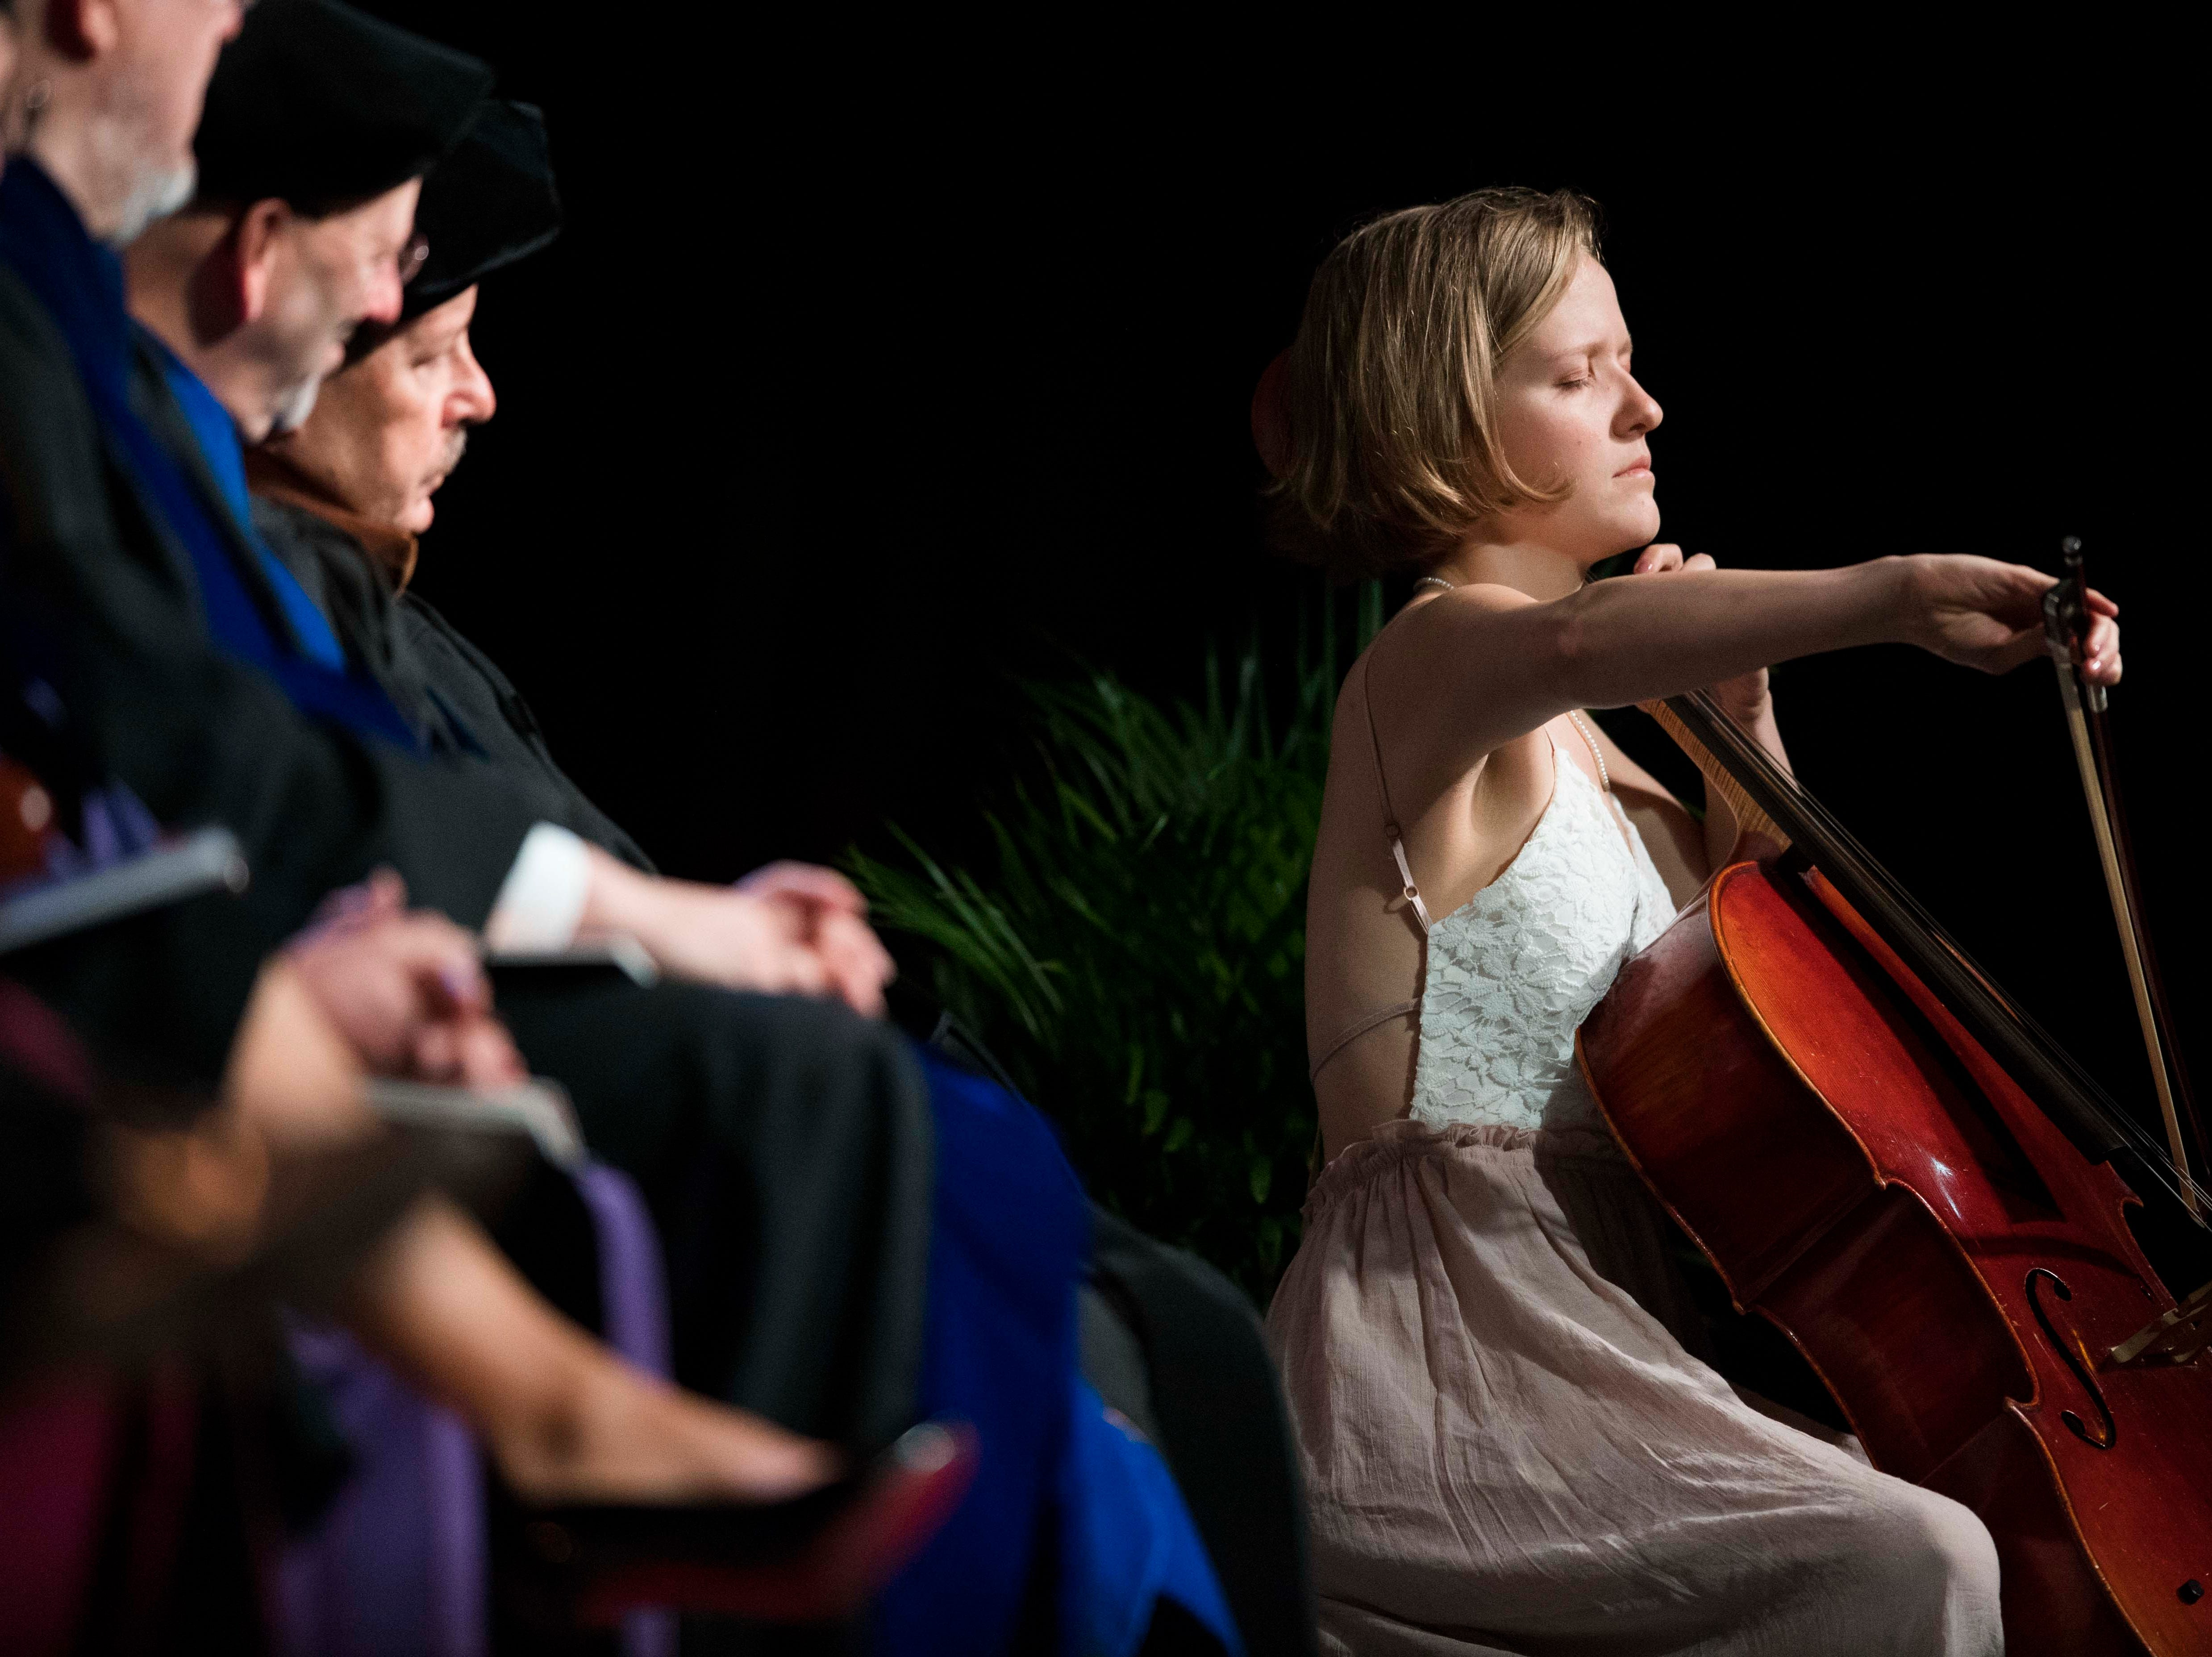 """Clara Johnson plays """"Reflections on the Waltz"""" during University of Tennessee's College of Arts and Sciences commencement in Thompson-Boling arena in Knoxville, Saturday, May 11, 2019."""